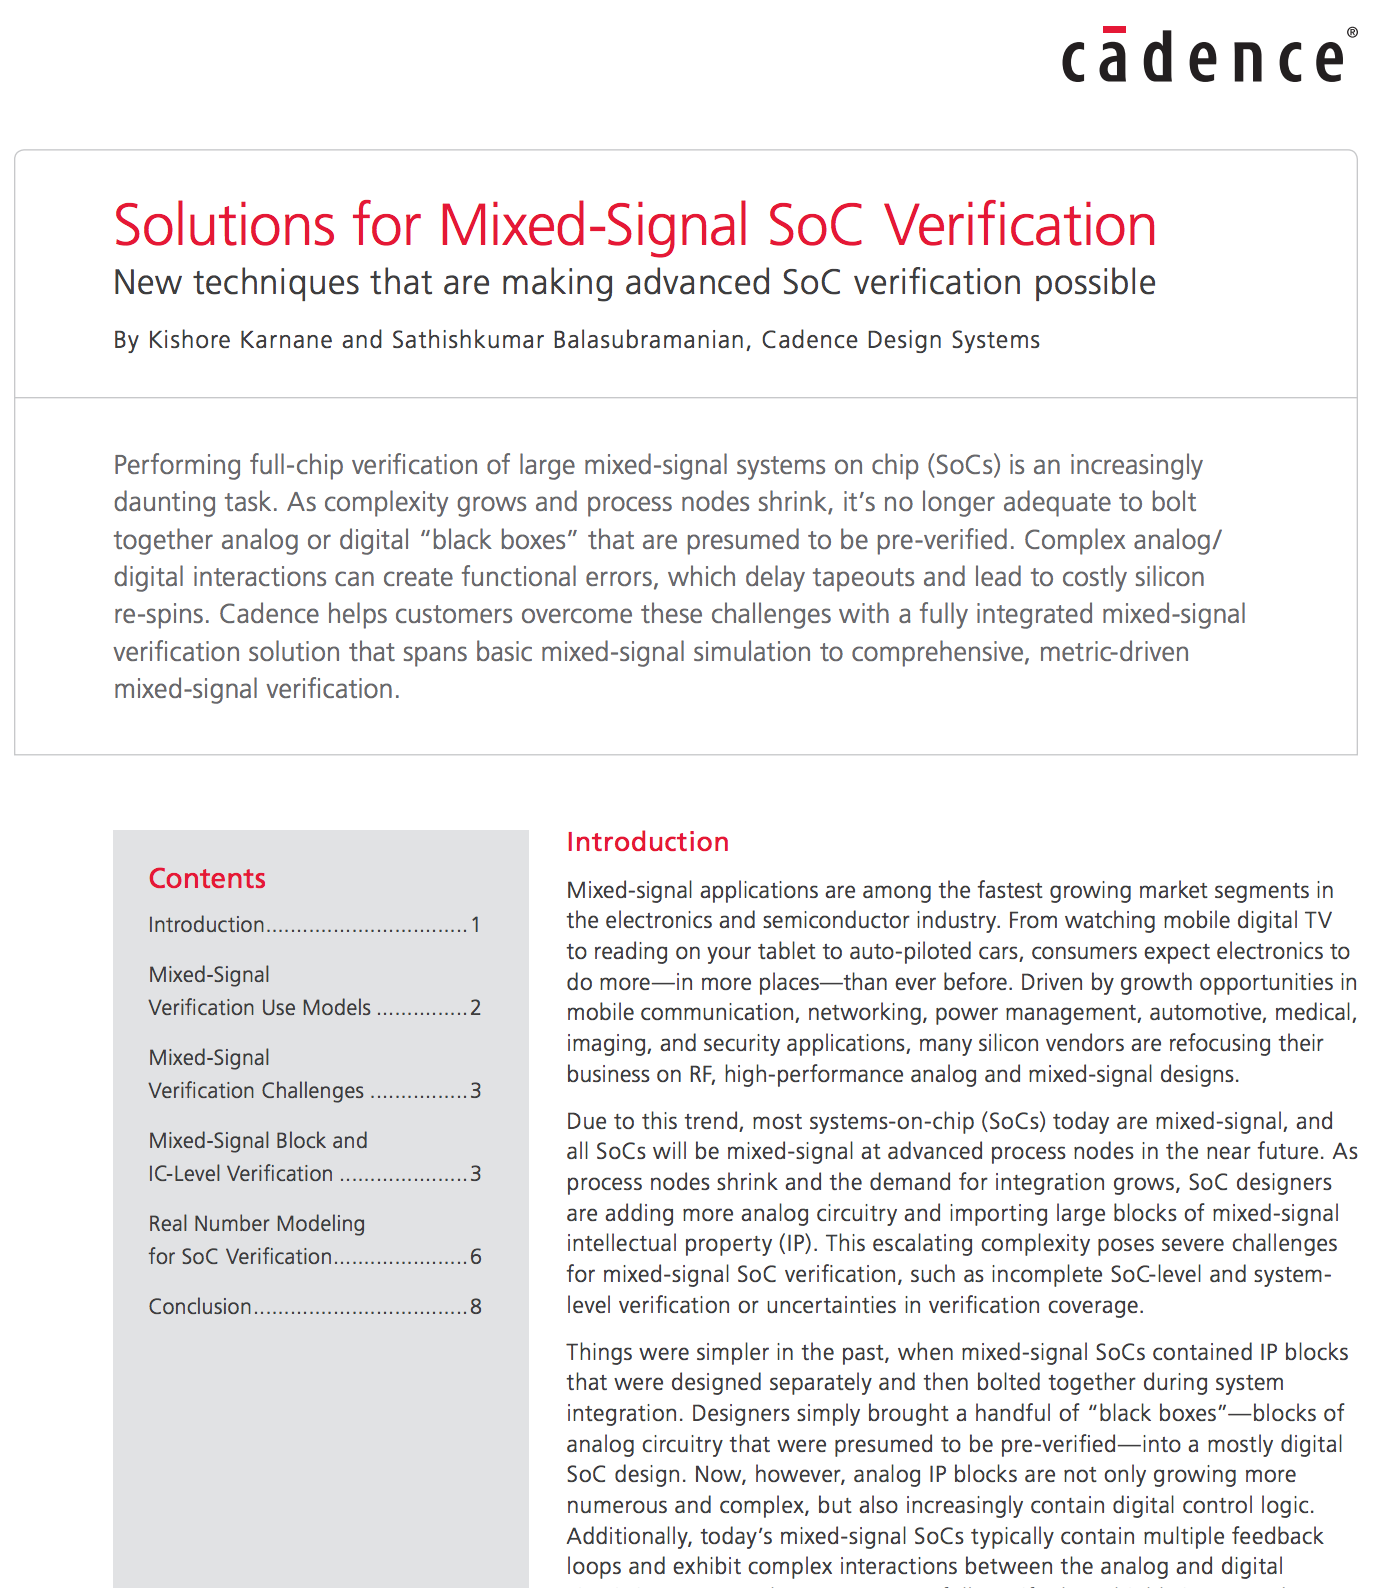 White Paper: Solutions for Mixed-Signal SoC Verification